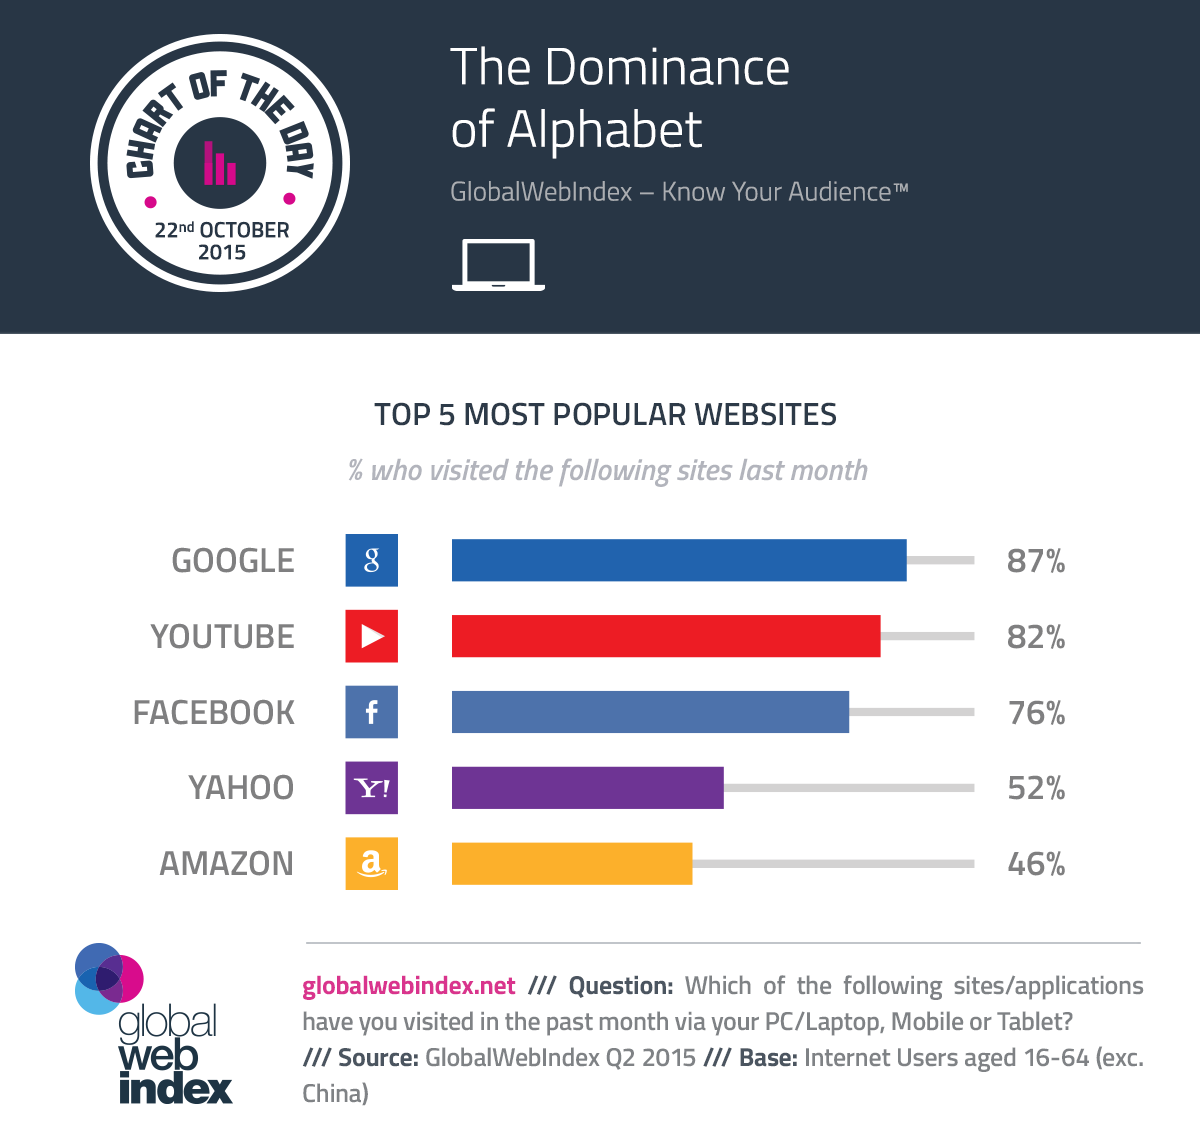 22-October-2015-The-Dominance-of-Alphabet